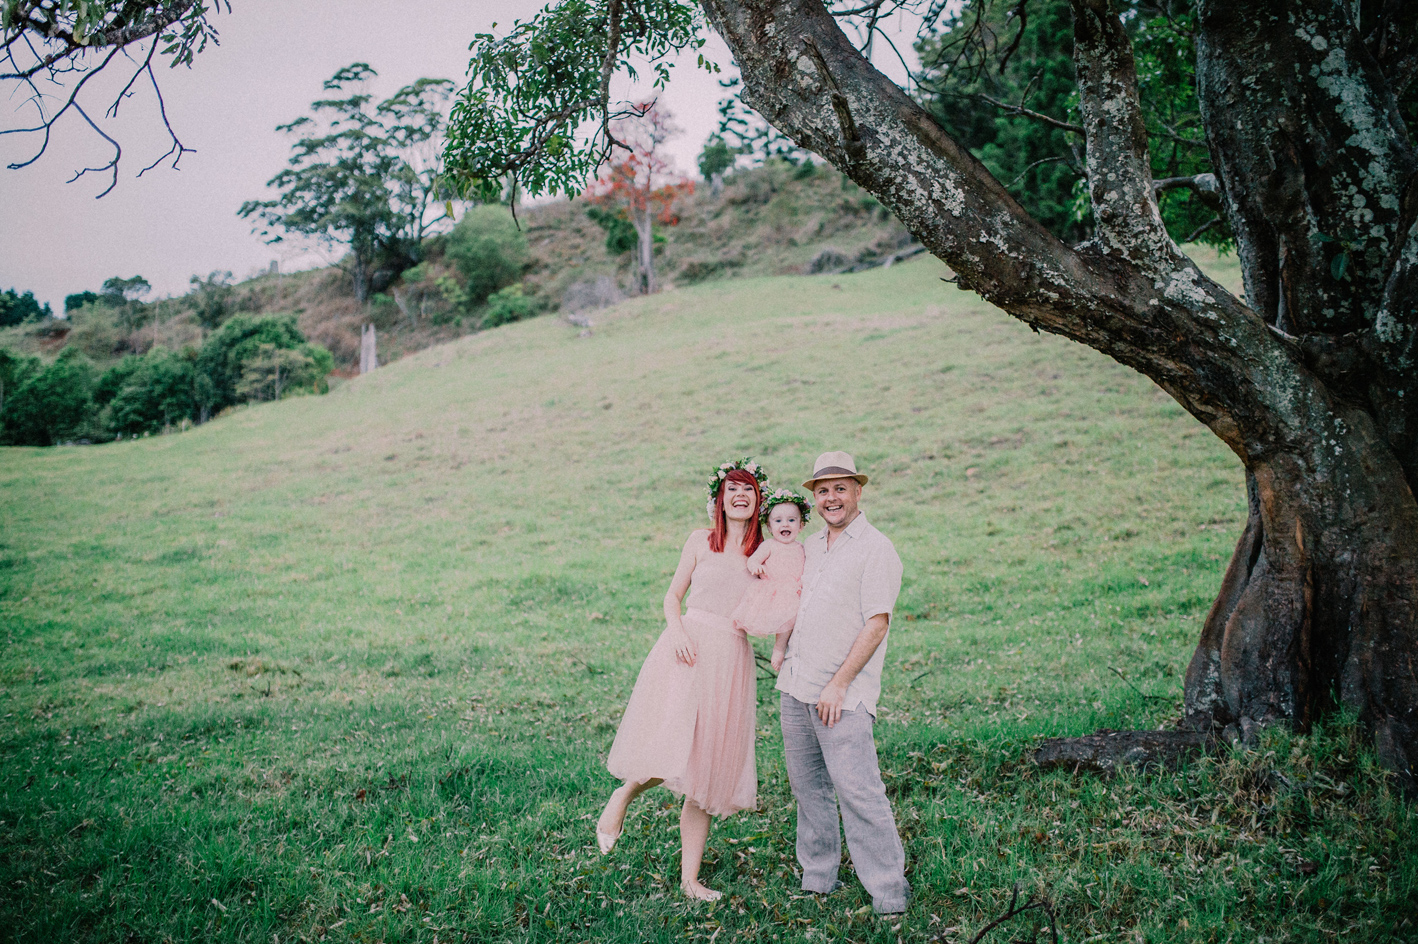 019-family-photos-crown-of-eden-mount-tamborine-sophie-baker-photography